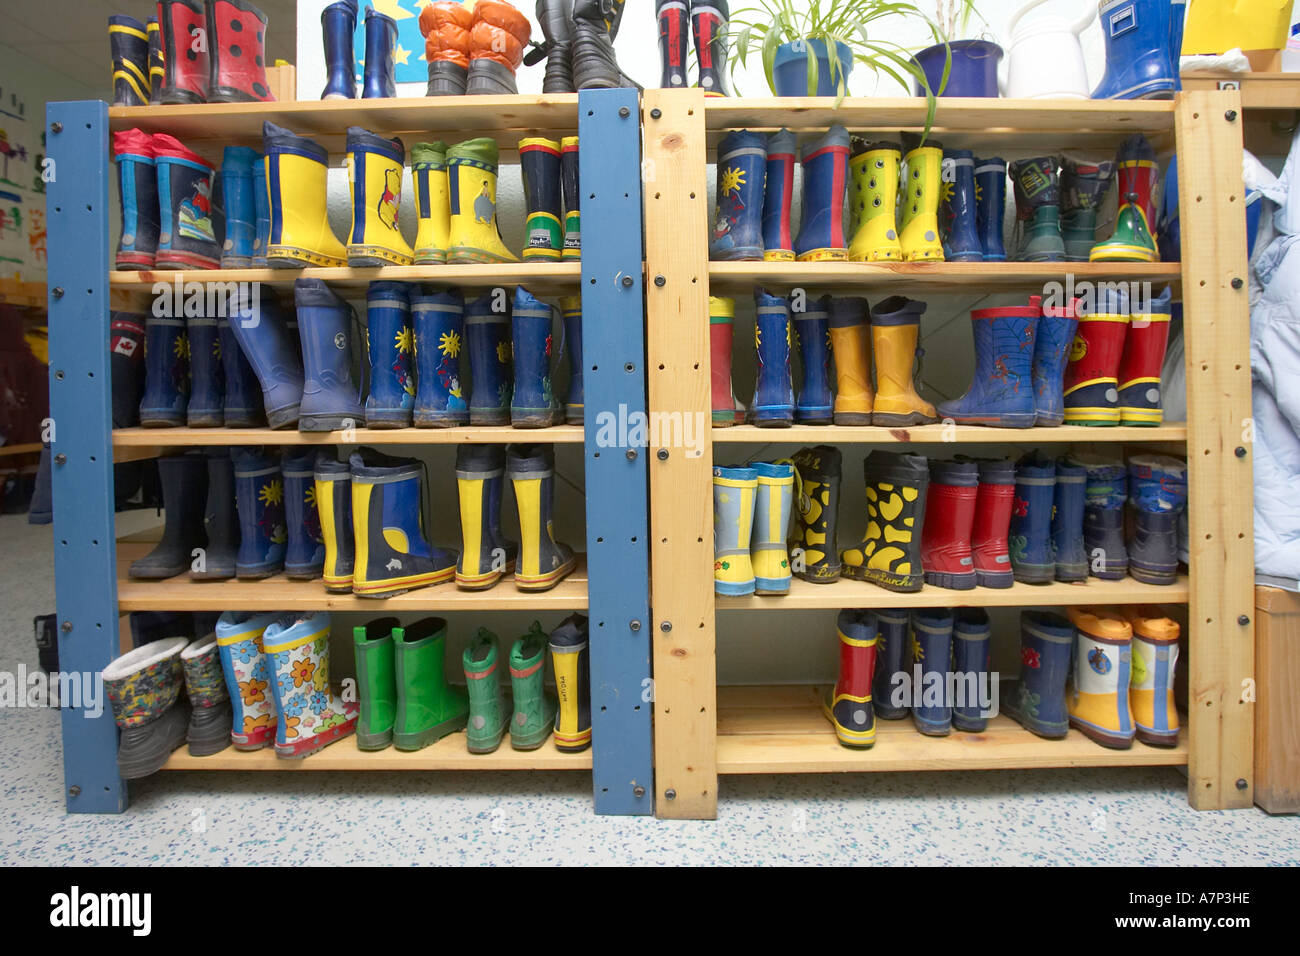 DEU, Germany, shoerack in a day-care centre center for children - Stock Image